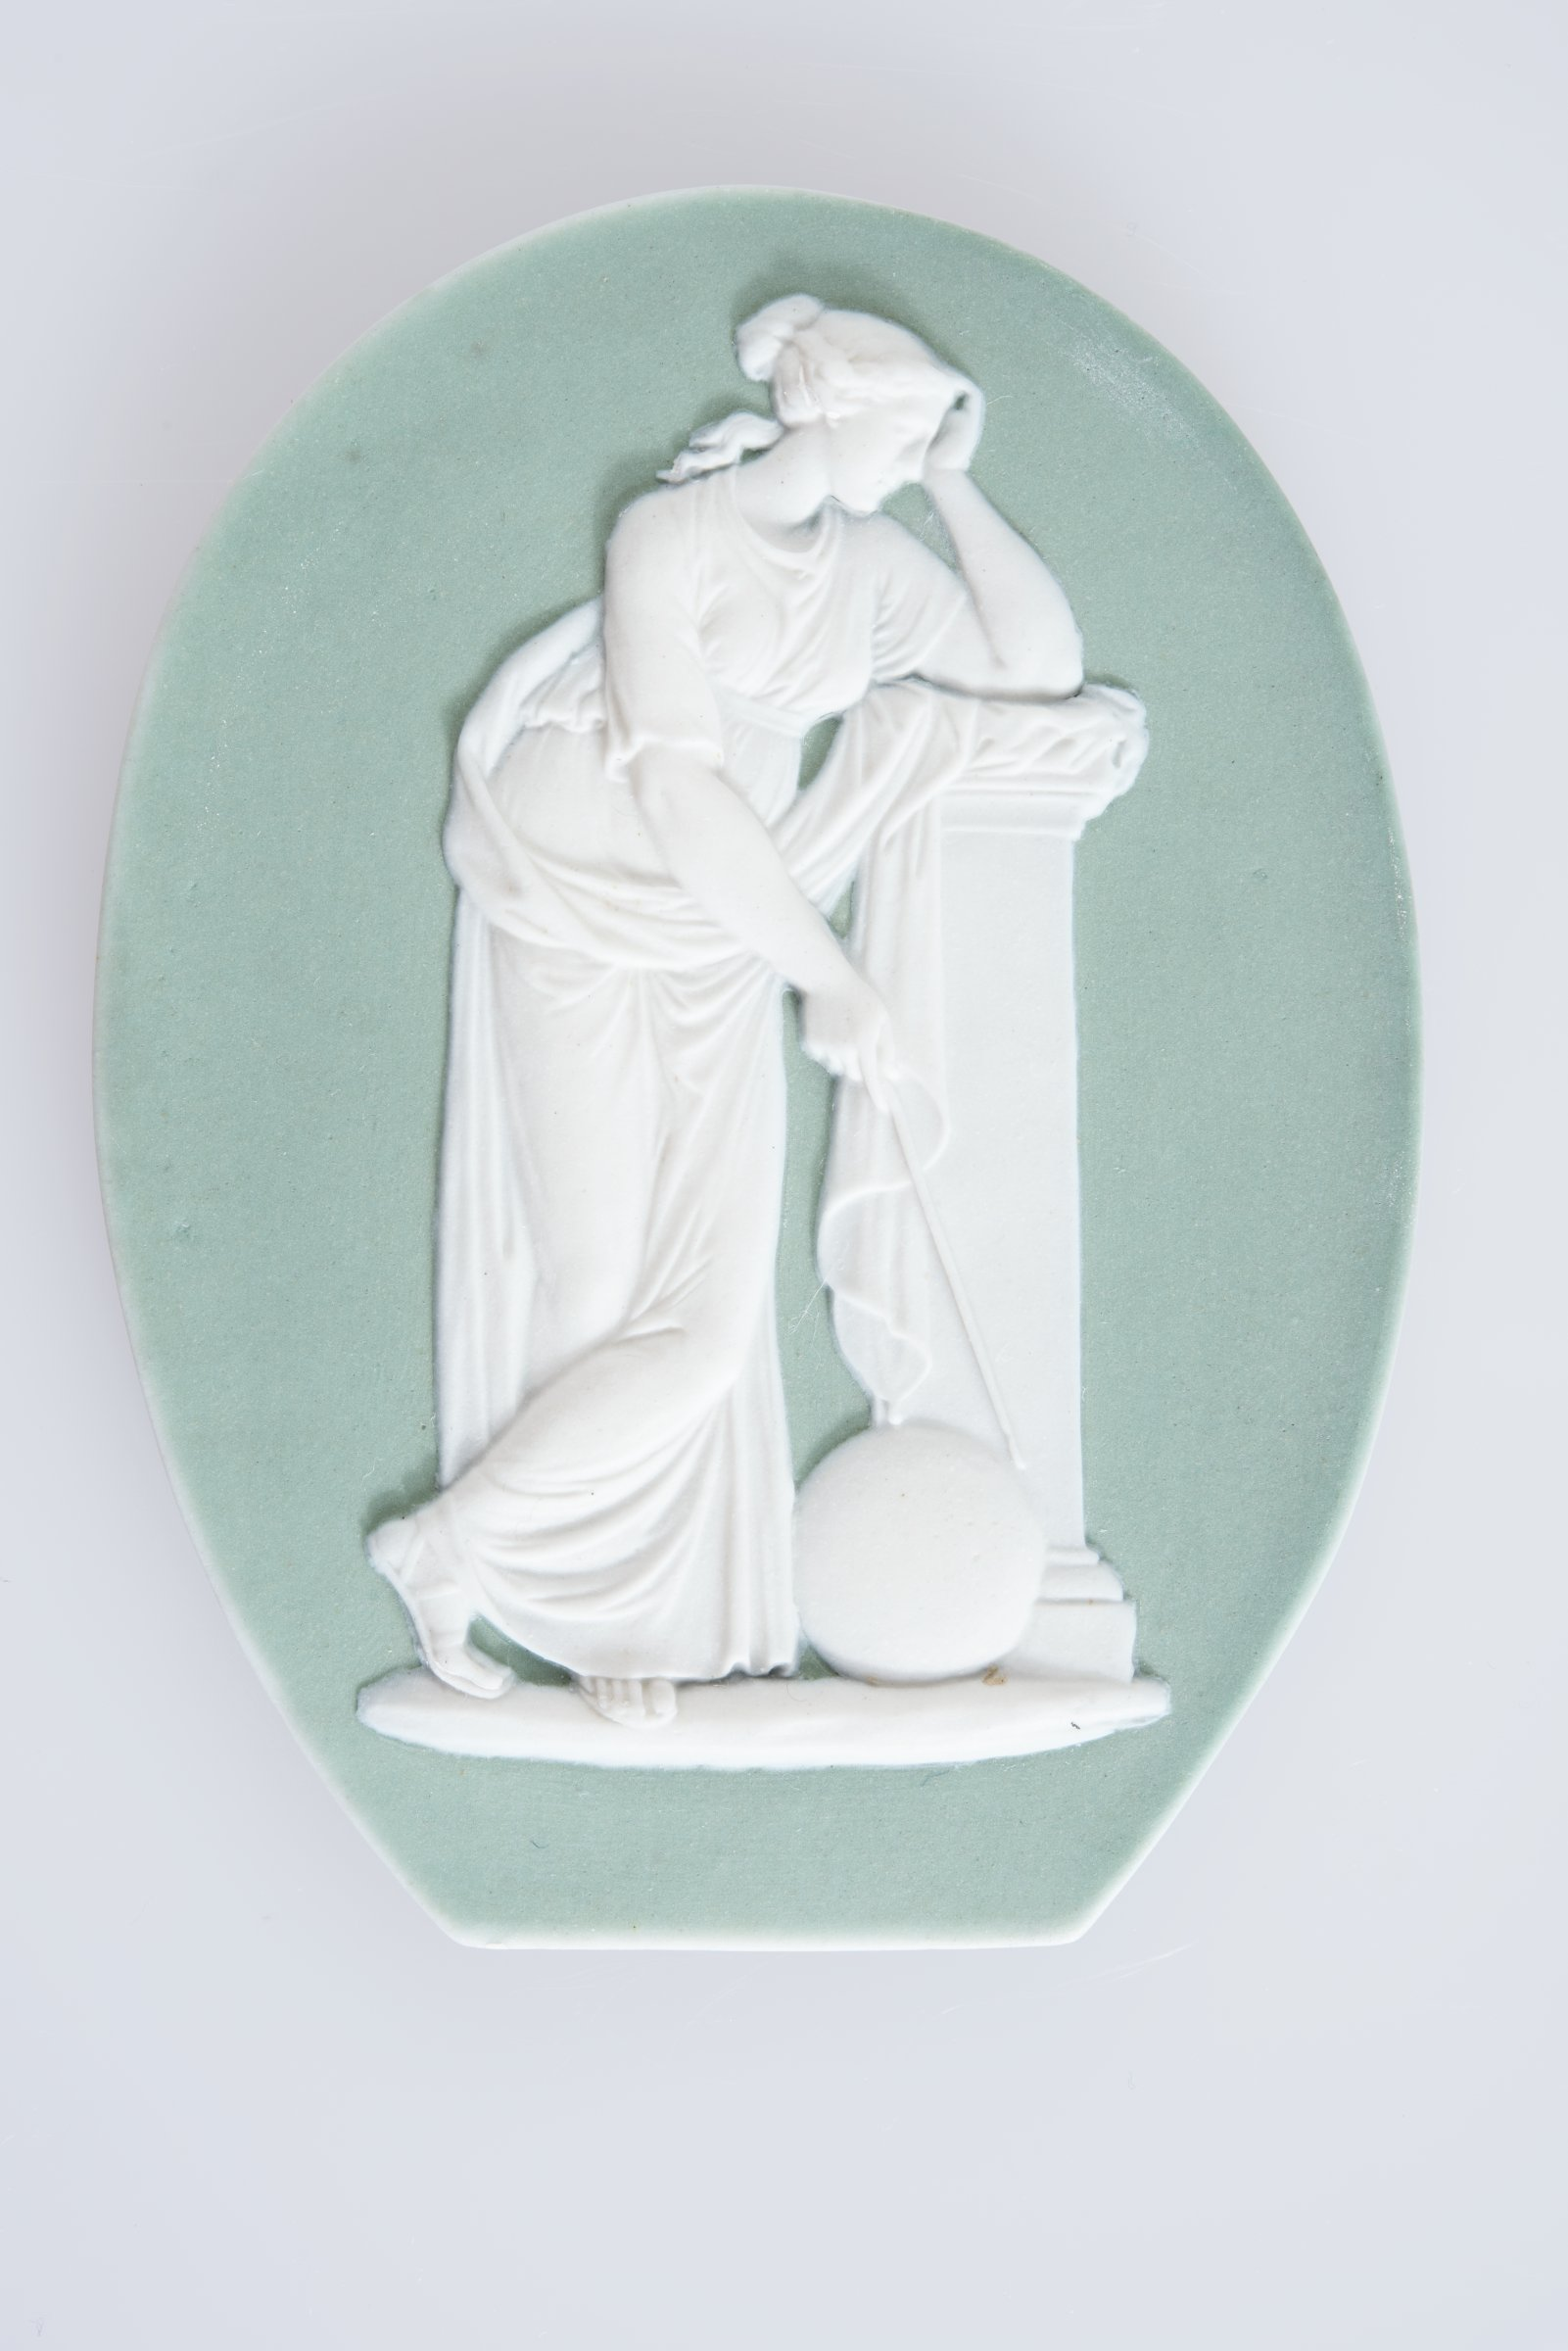 Small, oval plaque (truncated at the lower edge) of white jasper with green jasper dip and white relief decoration of the Muse Urania who presided over astronomy, and often holds a compass used by astronomers in her hand, standing in full figure next to a pedestal with a globe at her feet.